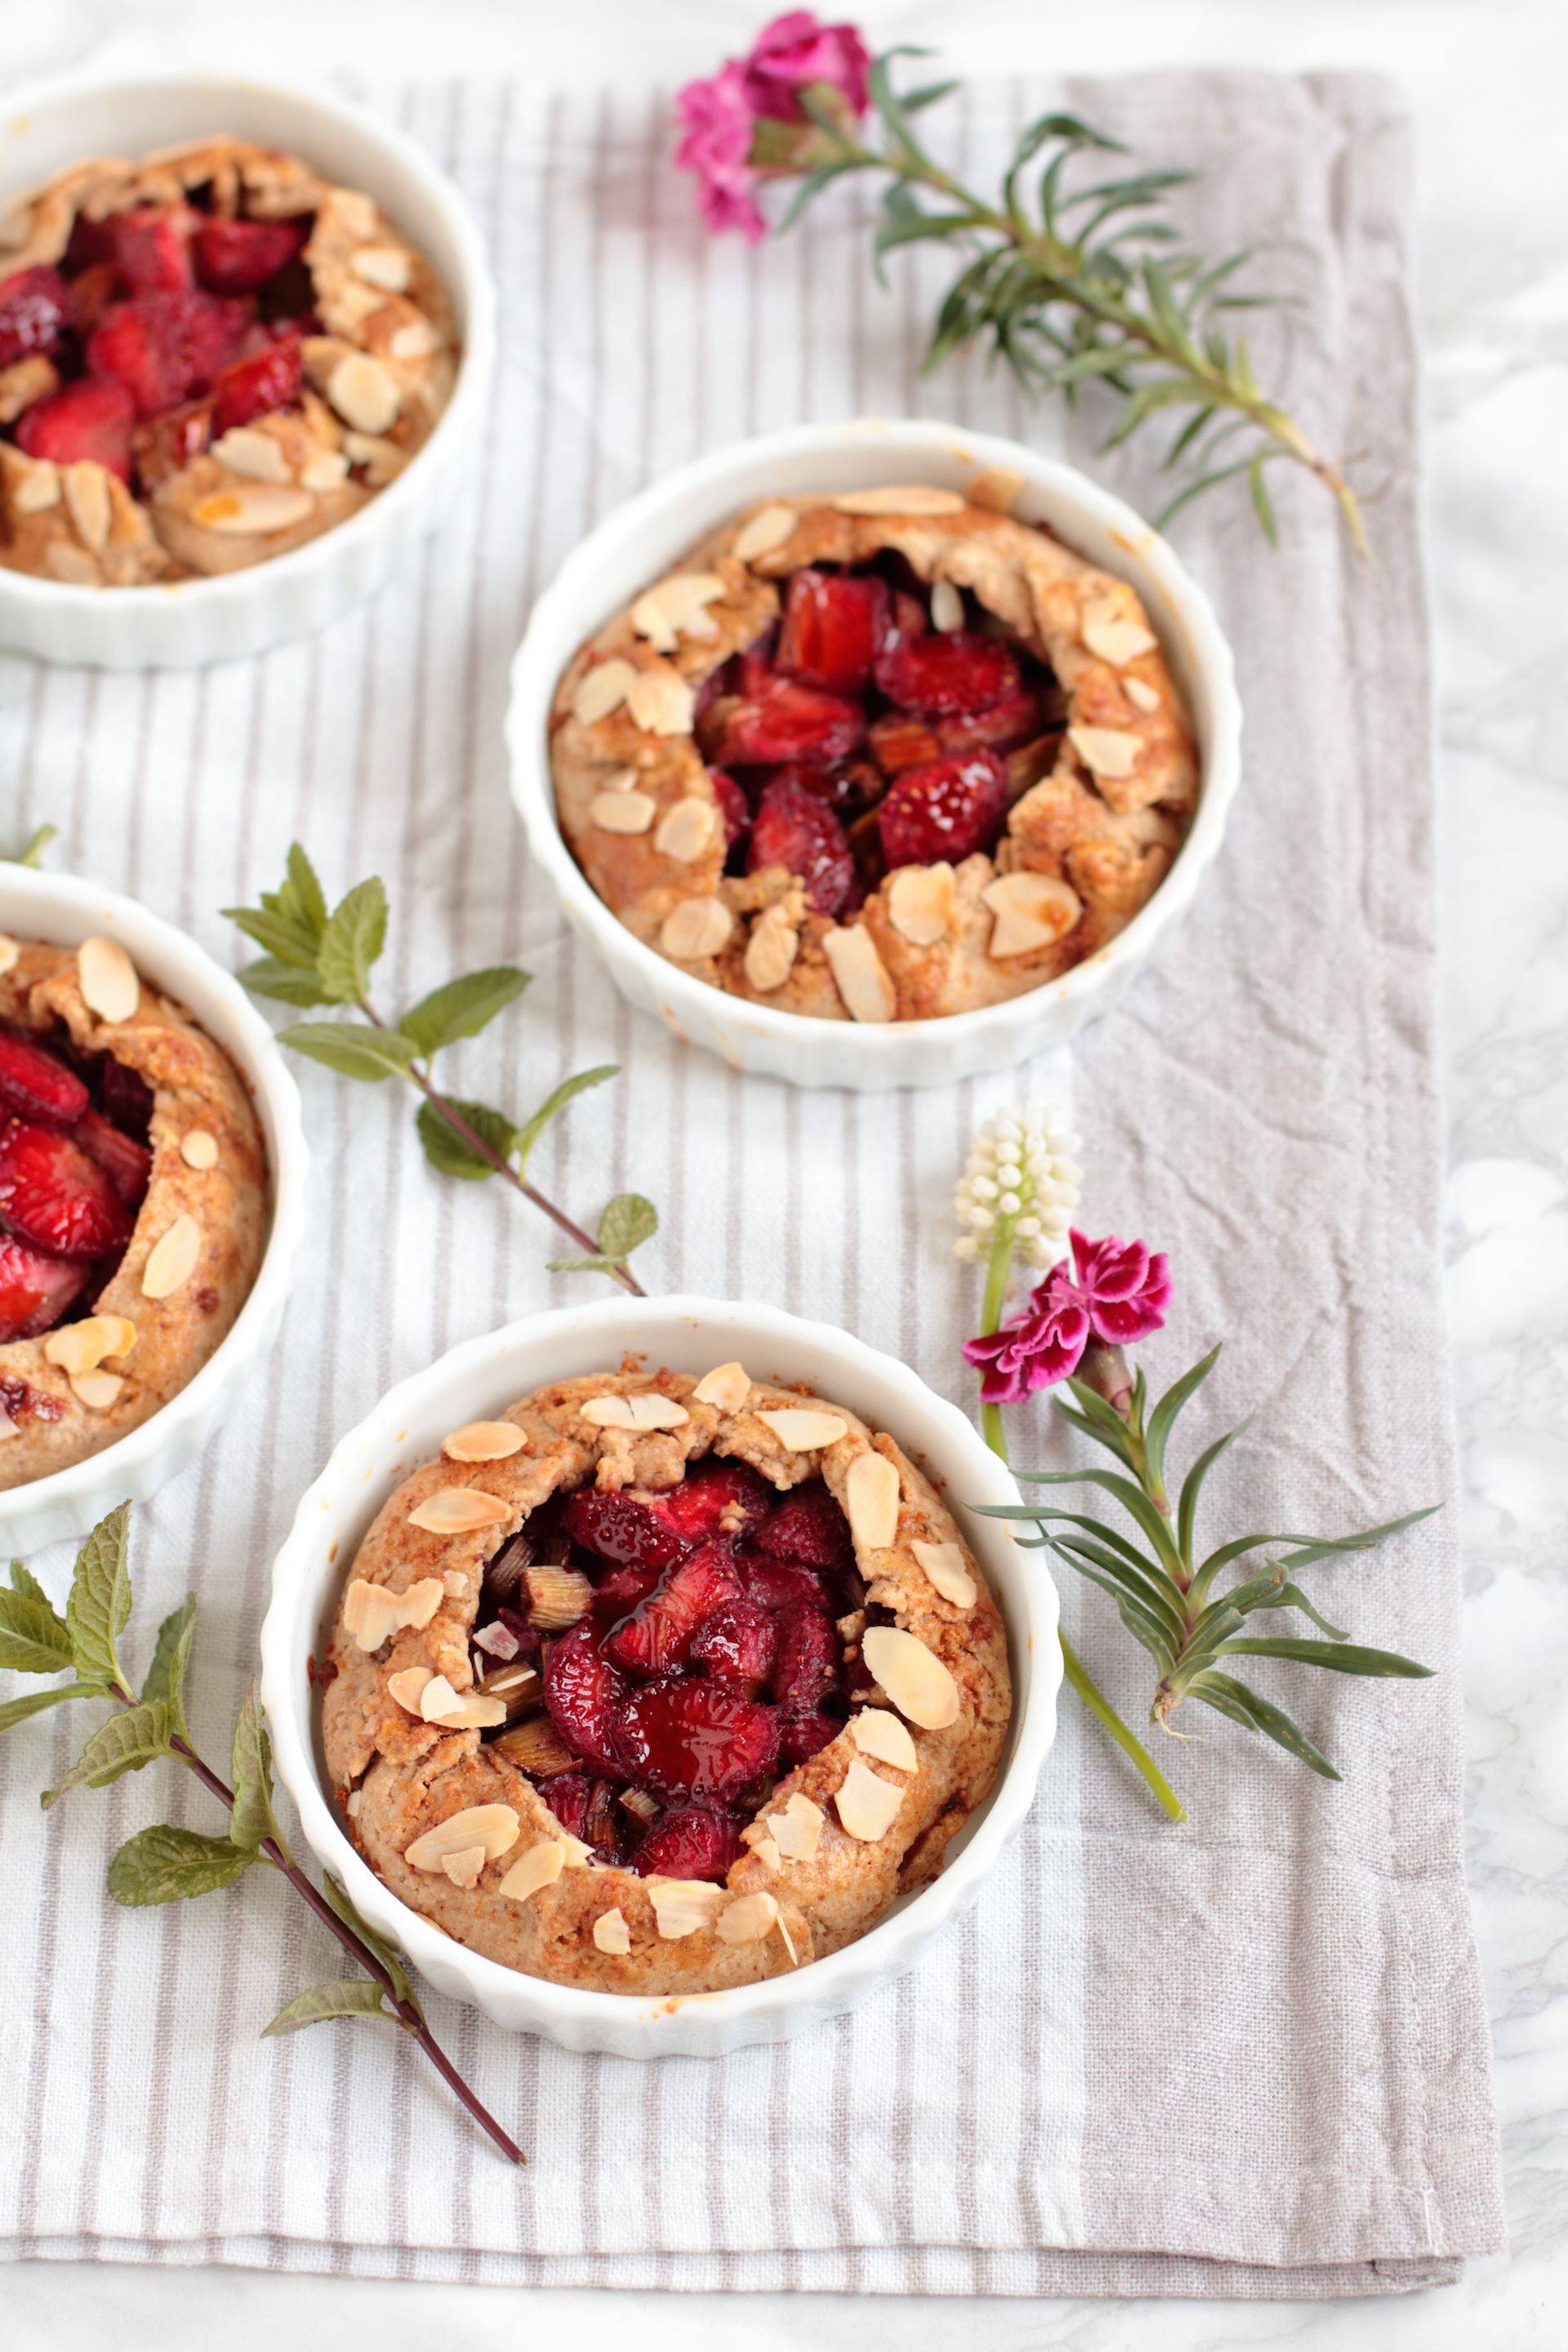 galettes alle fragole